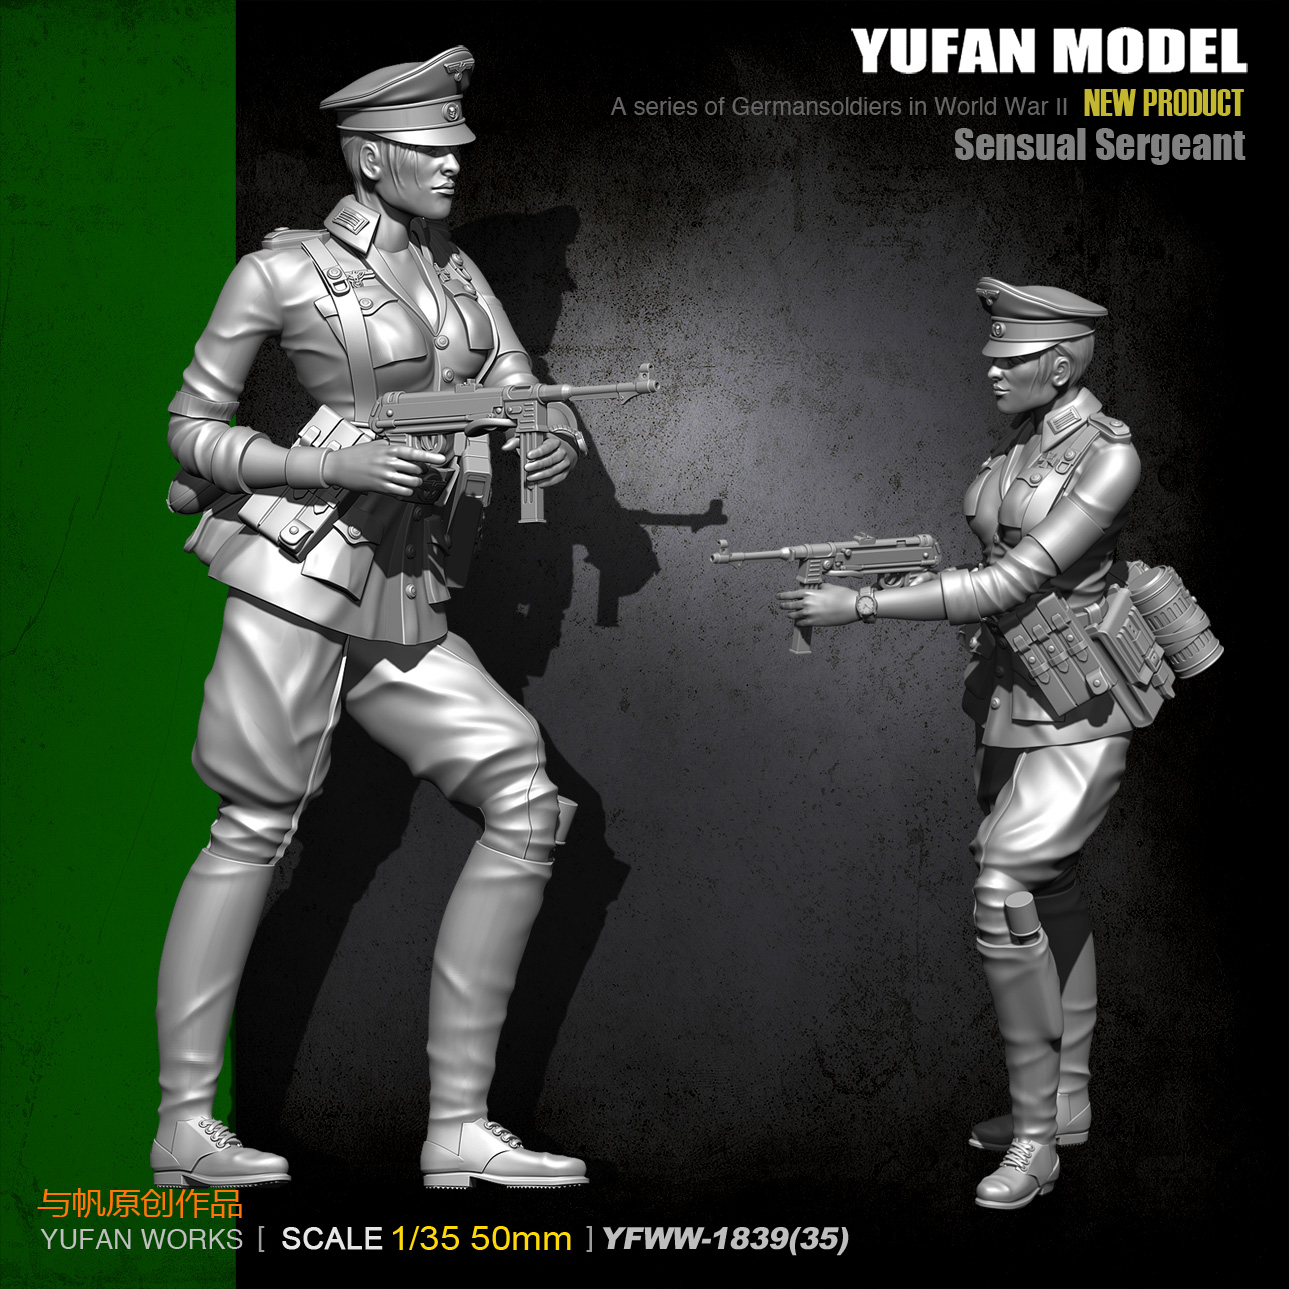 YuFan Model And Sail Original 1/35 World War II Female Officer Resin Soldier YFWW35-1839 KNL Hobby